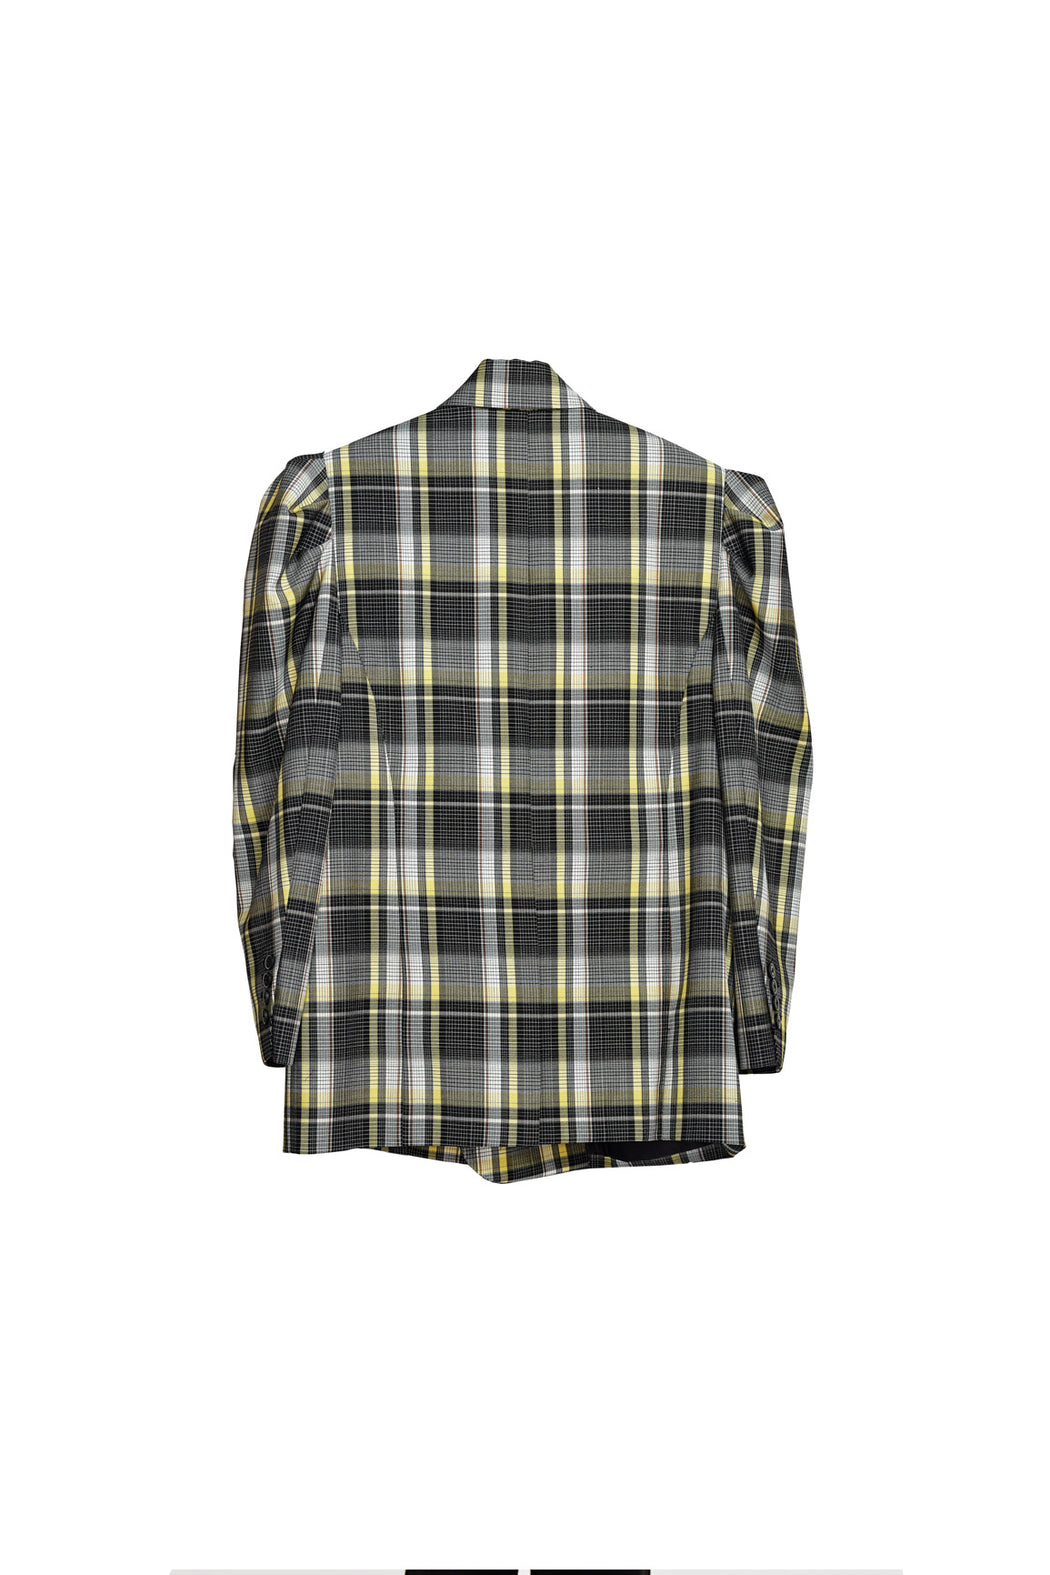 Double Breasted Button Jacket - Tartan Check Black